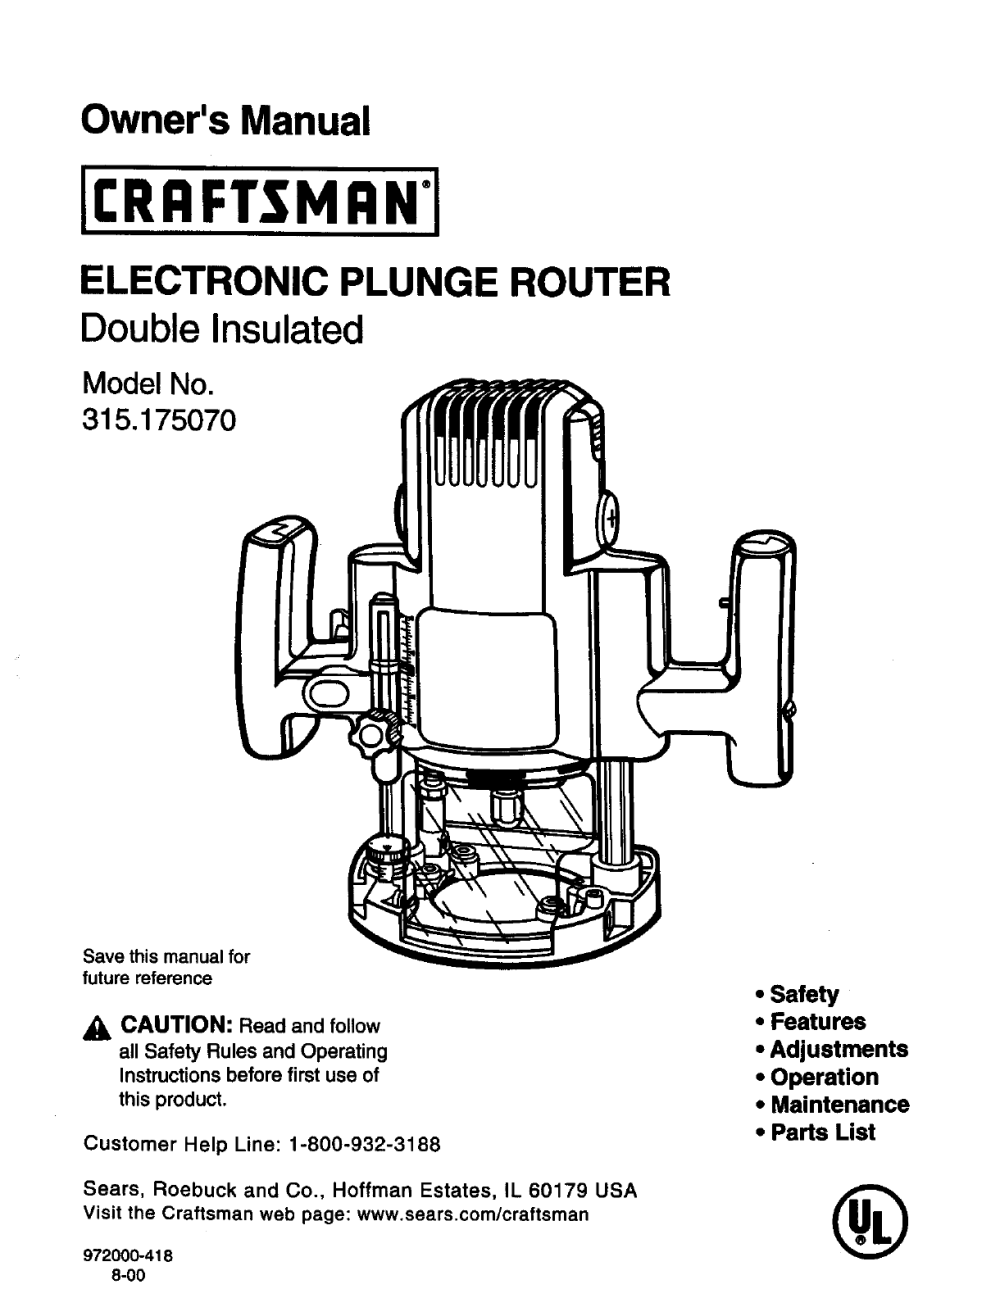 medium resolution of craftsman 315175070 user manual electronic plunge router manuals and guides l0090086